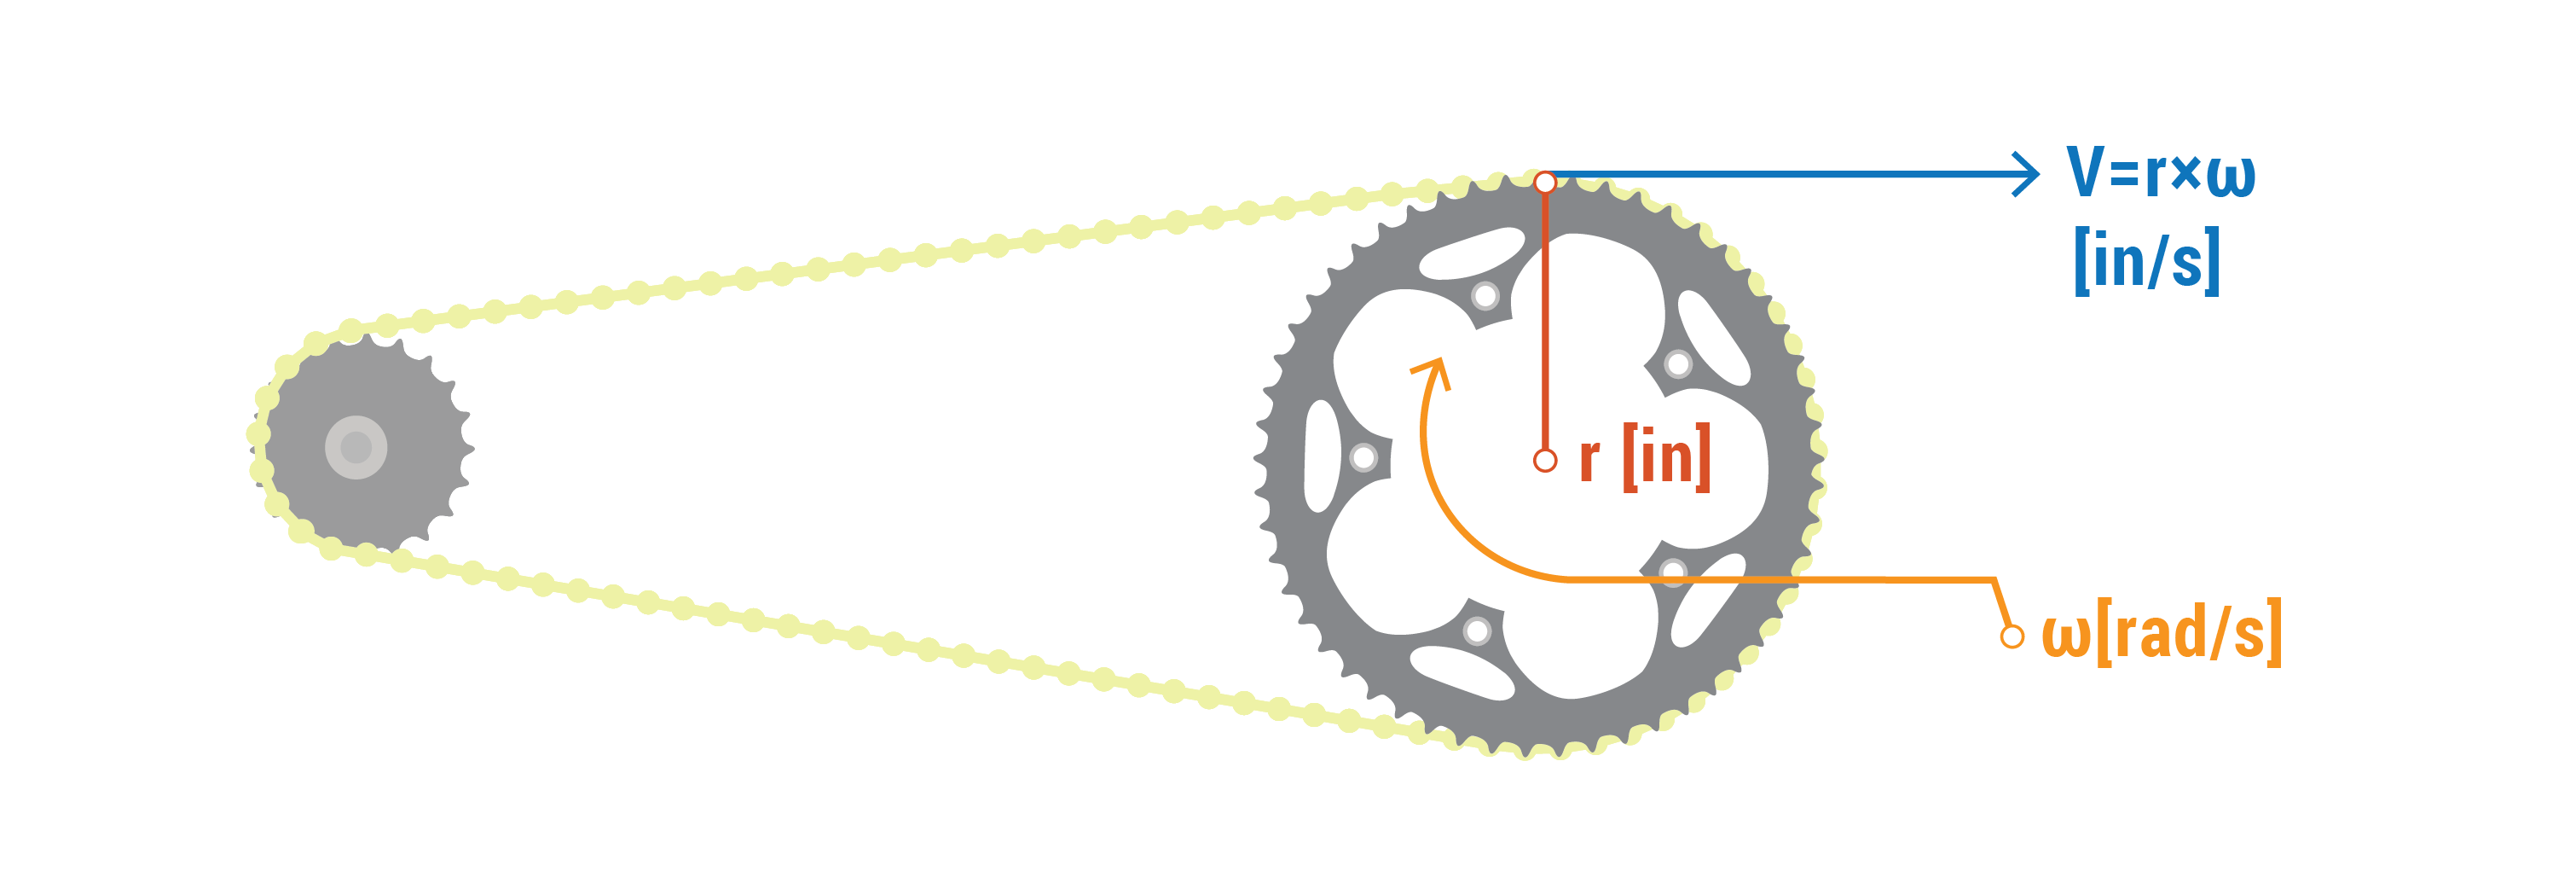 A graphic diagram of a bicycle chainring